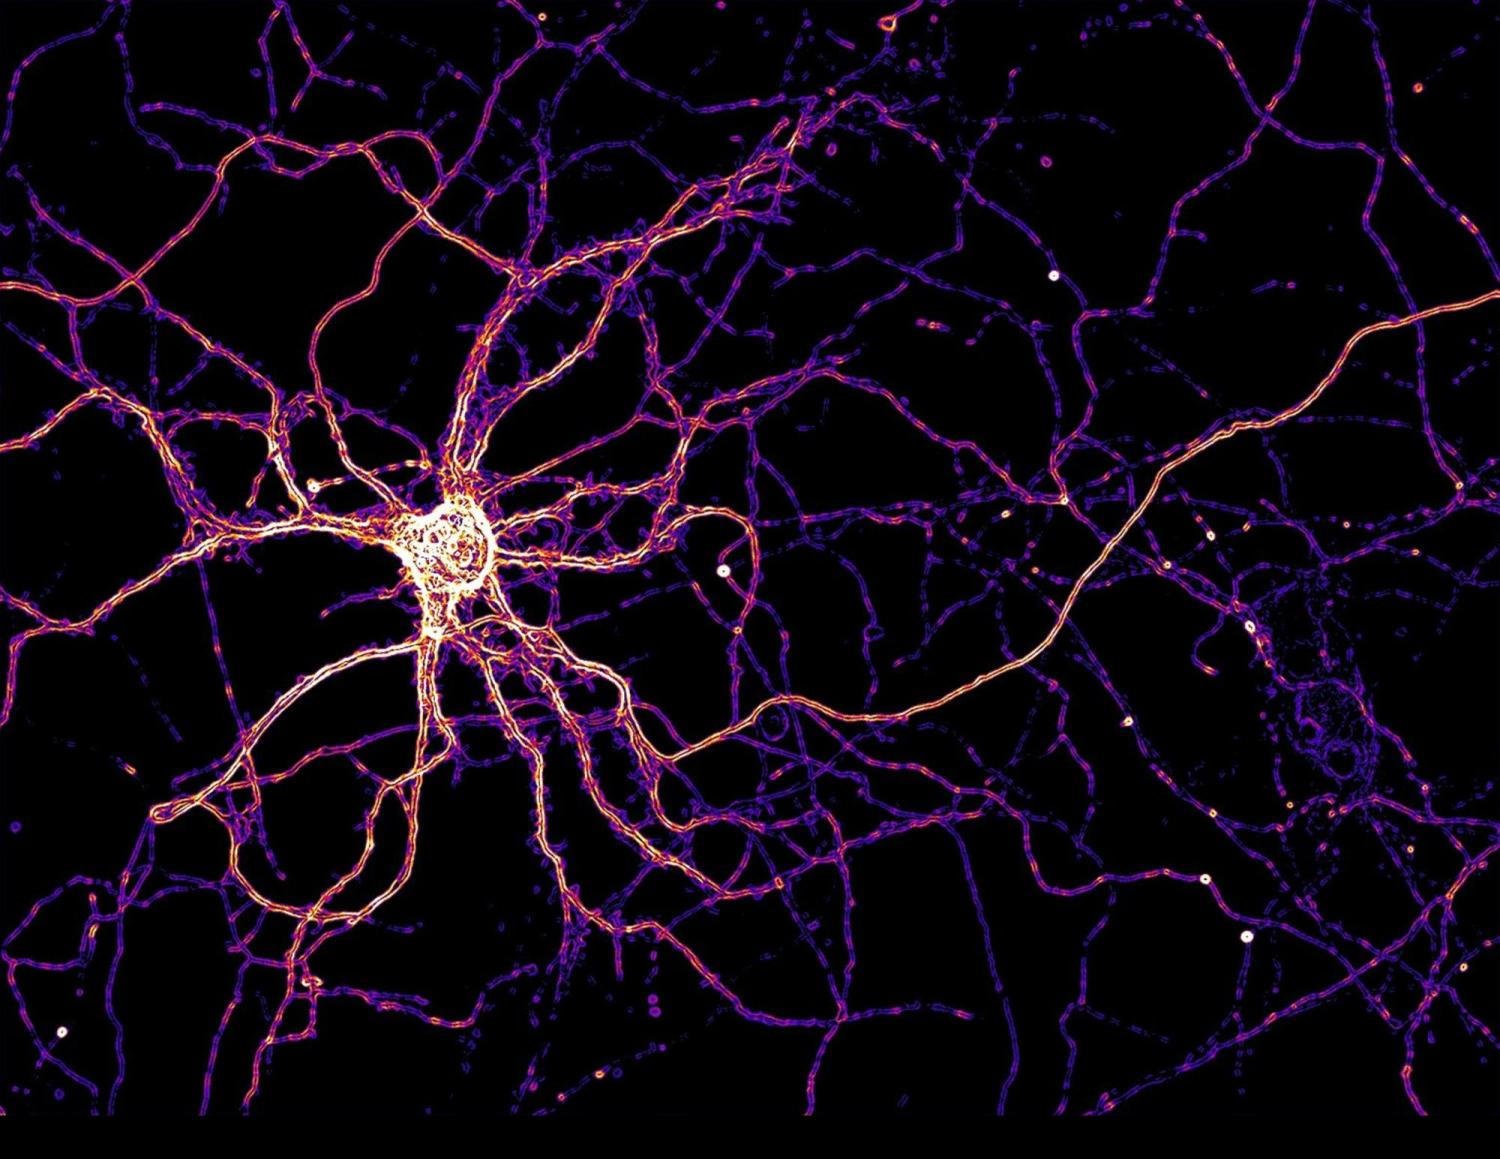 Hippocampal neurons use zinc as a neurotransmitter, but it is difficult to see zinc dynamics in cells. To overcome this challenge, primary hippocampal neurons can be genetically modified to express a fluorescent zinc sensor to measure zinc dynamics in real time. The image shown here is an example of one such modified neuron colored to show zinc sensor expression levels.